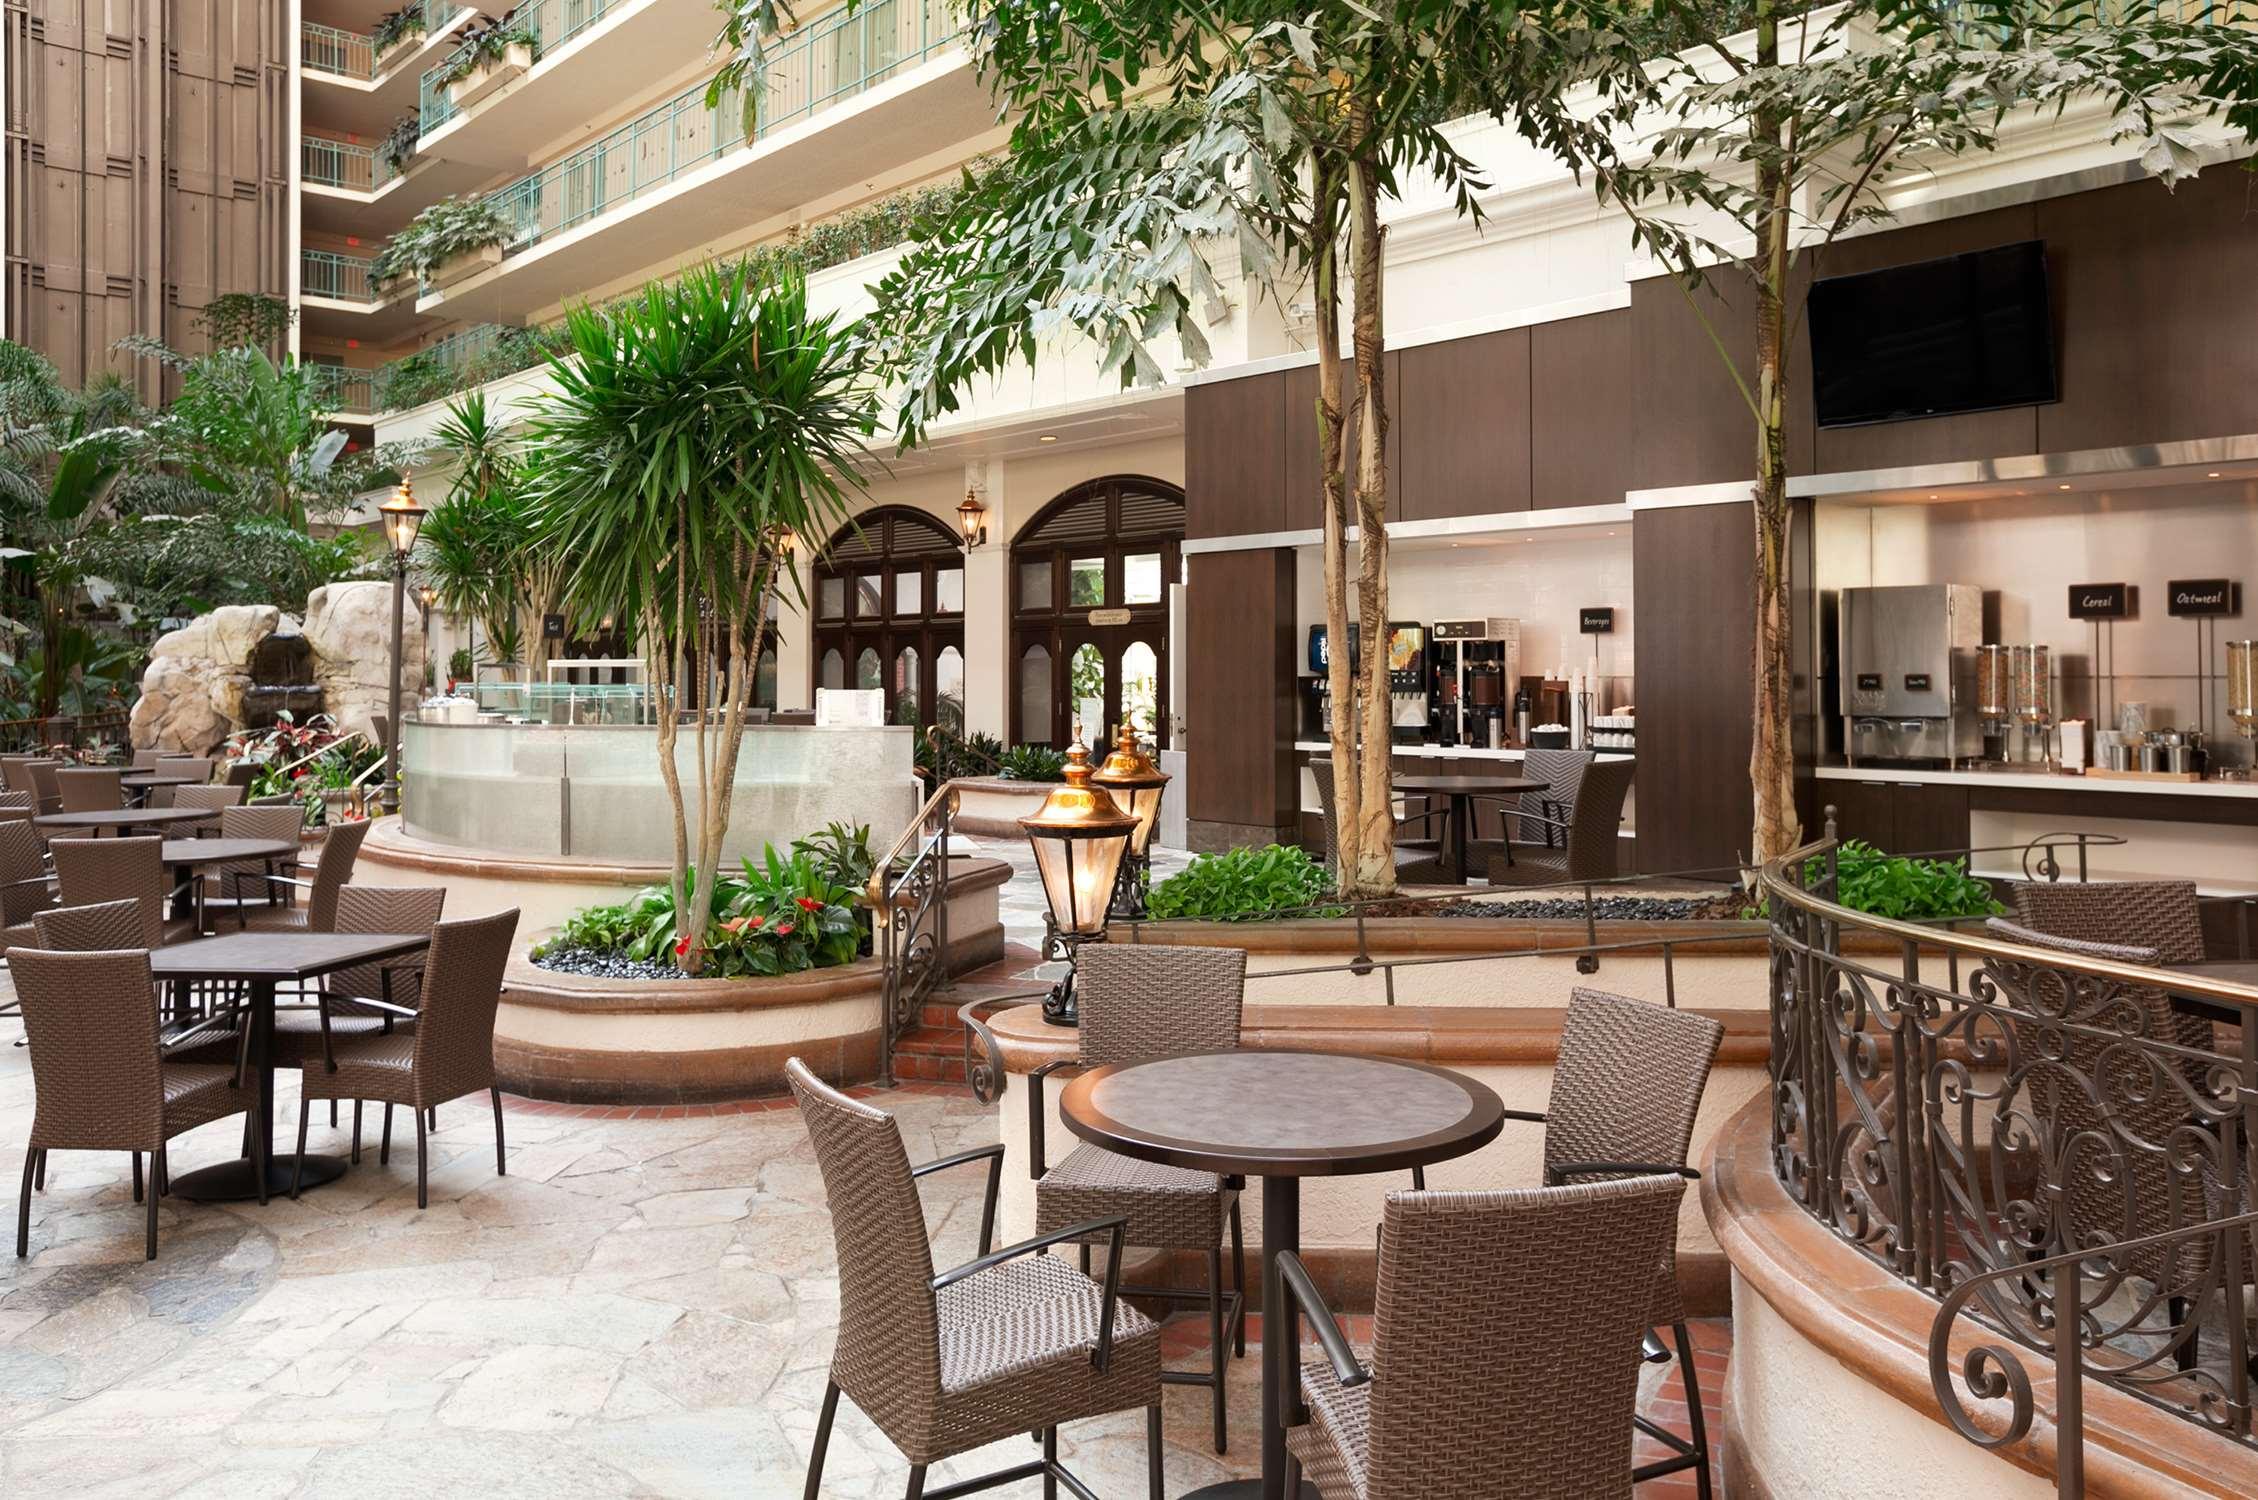 Embassy Suites by Hilton San Francisco Airport Waterfront image 3